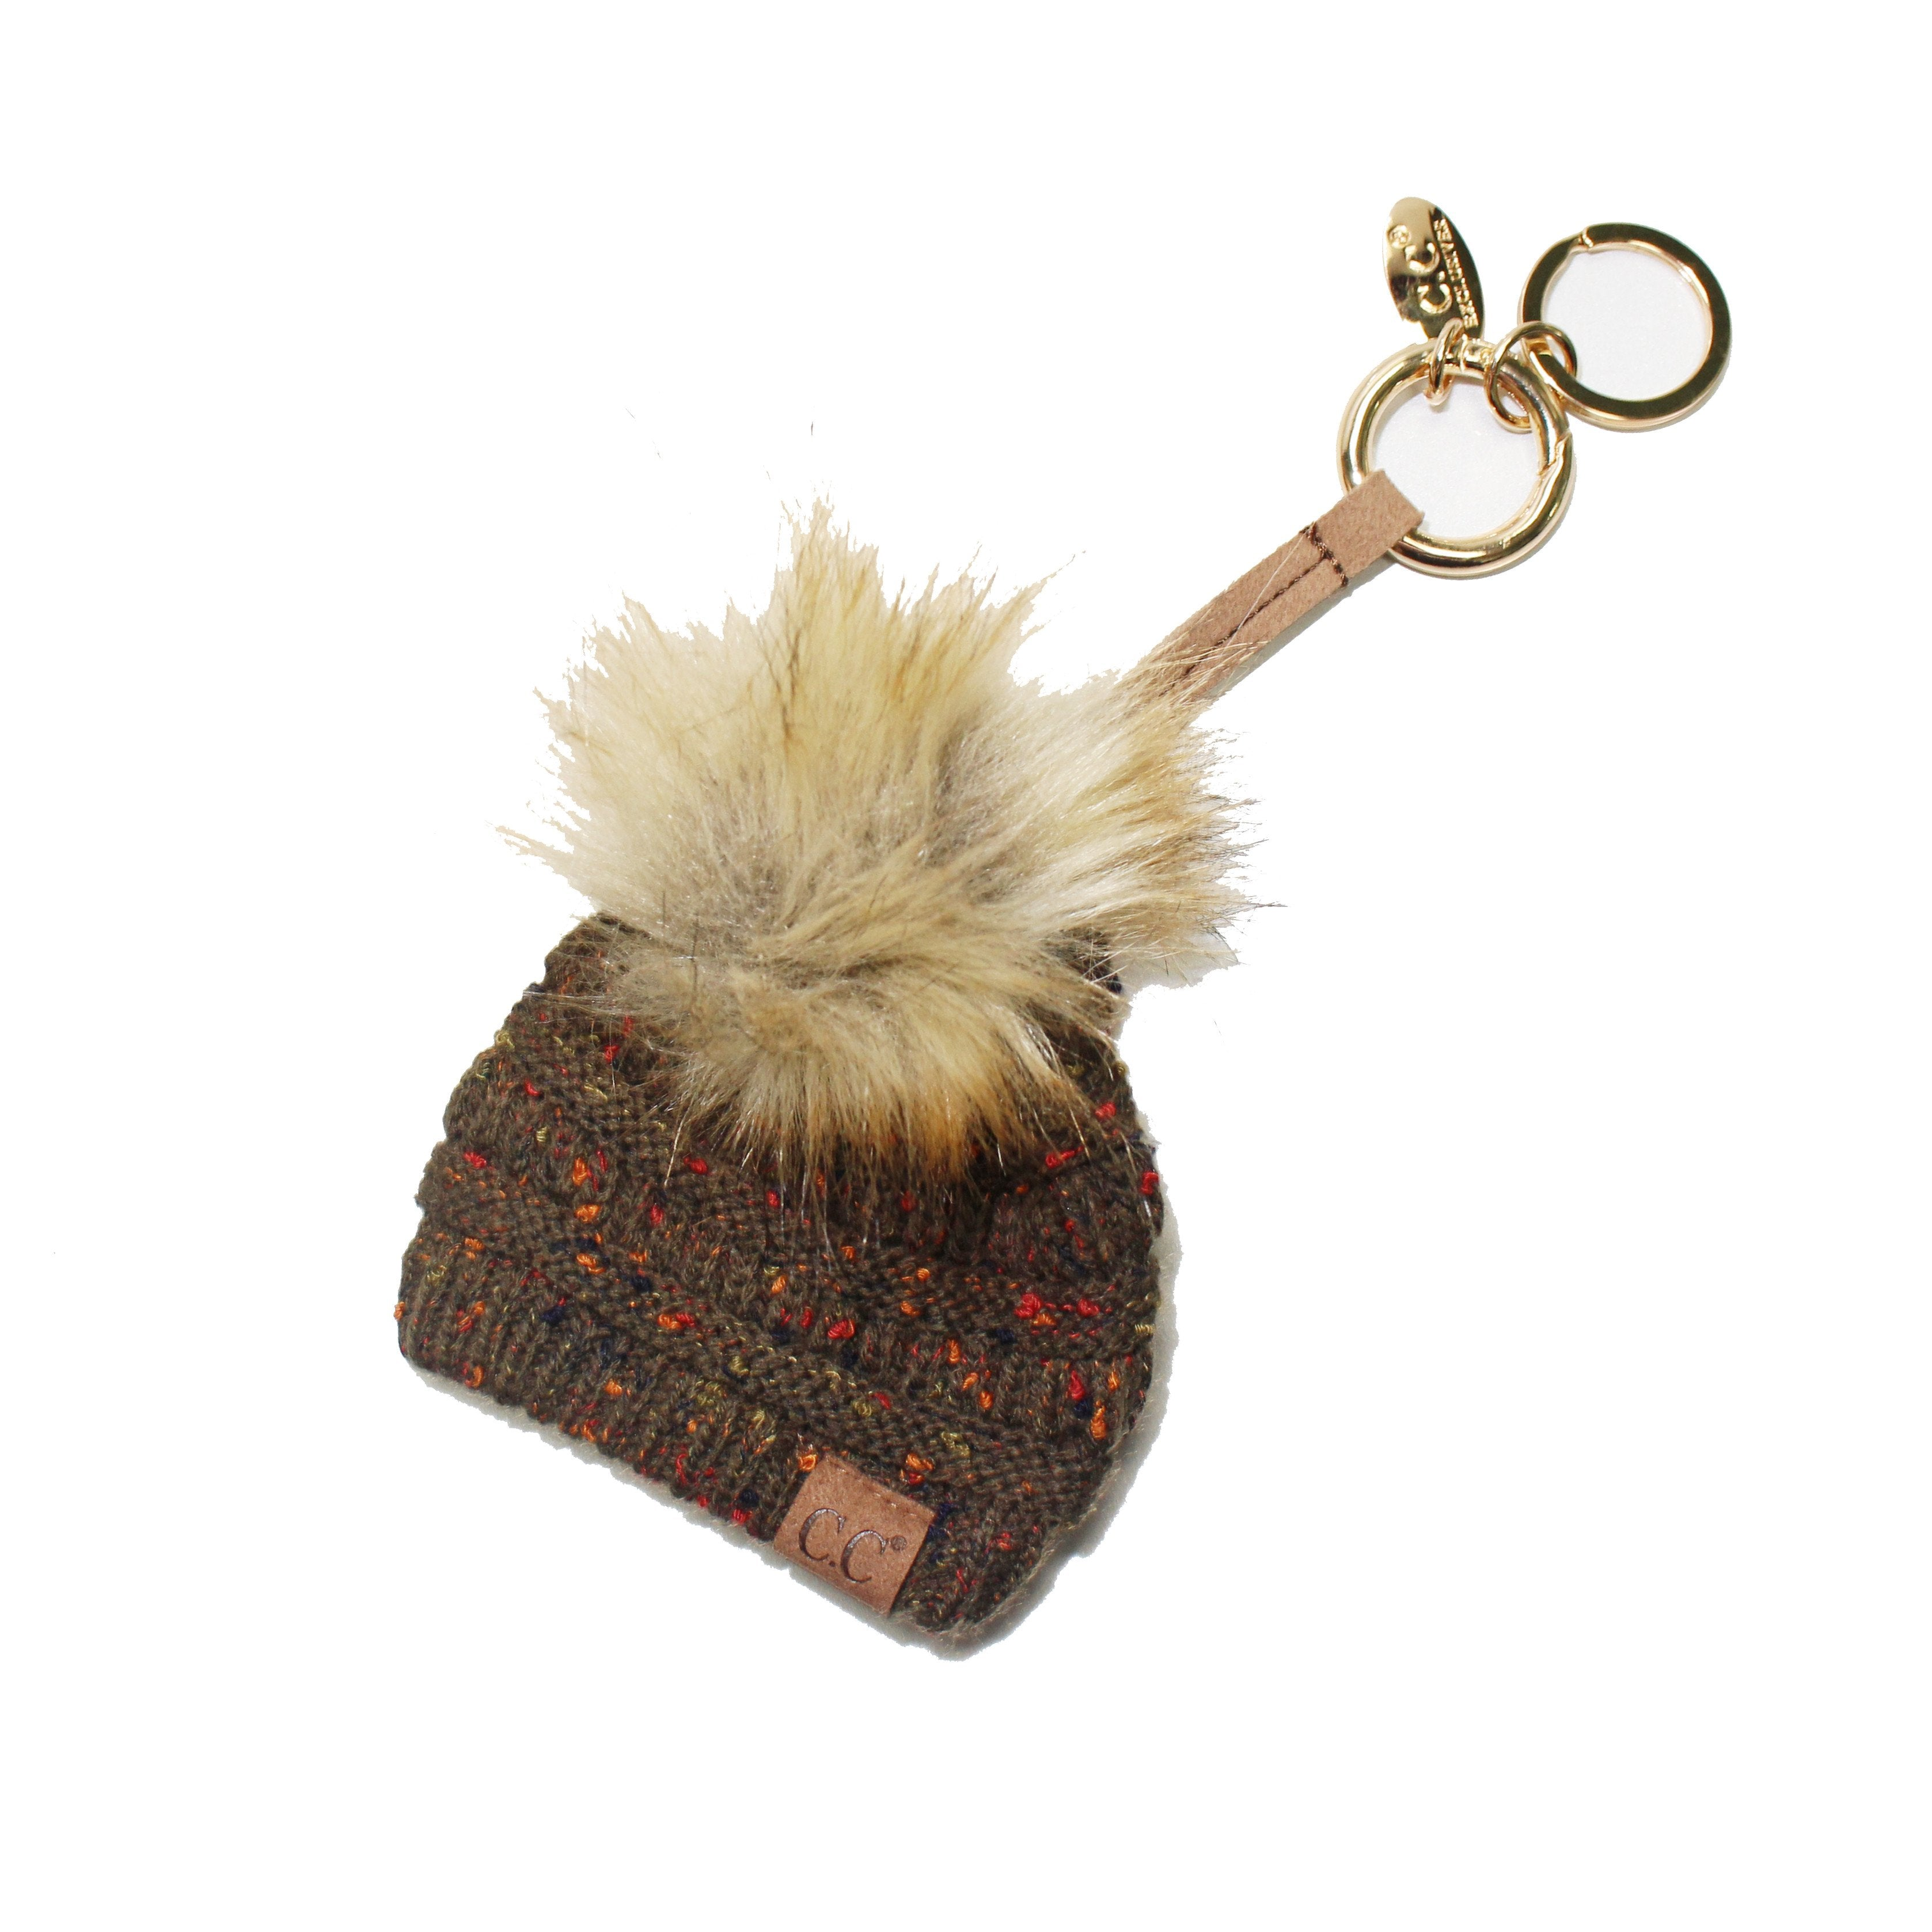 KB-33 New Olive Speckled Beanie Keychain